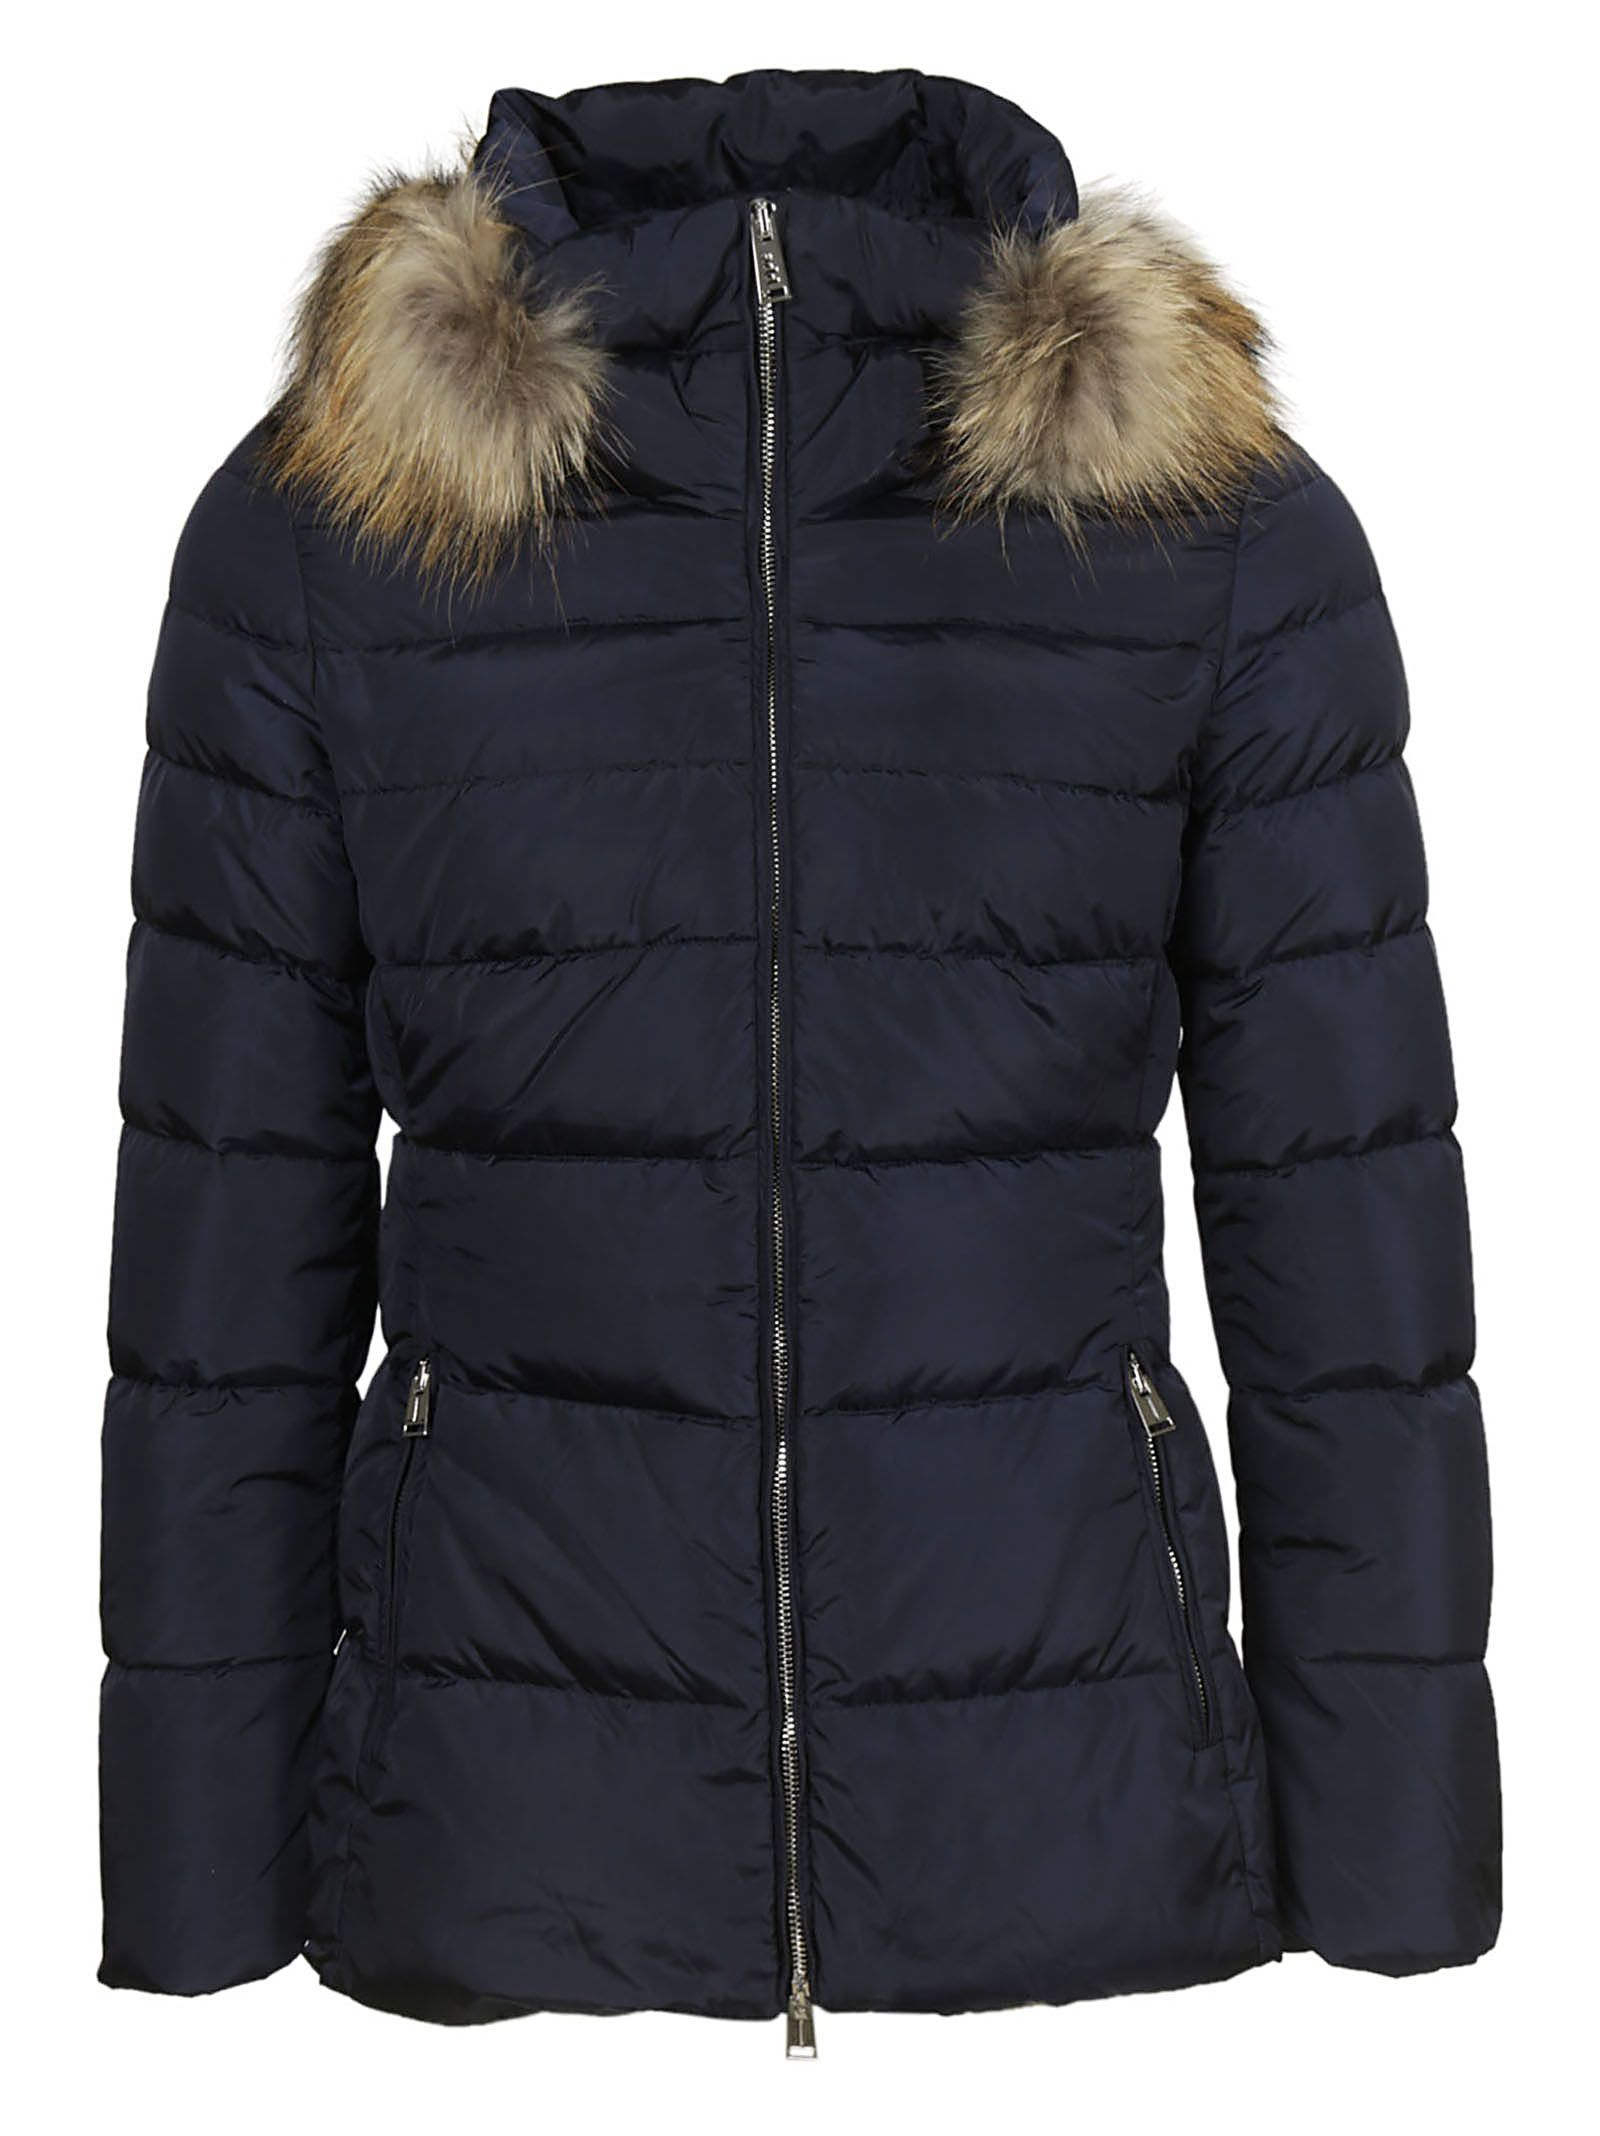 ADD Fur Trimmed Padded Jacket in Blu Navy